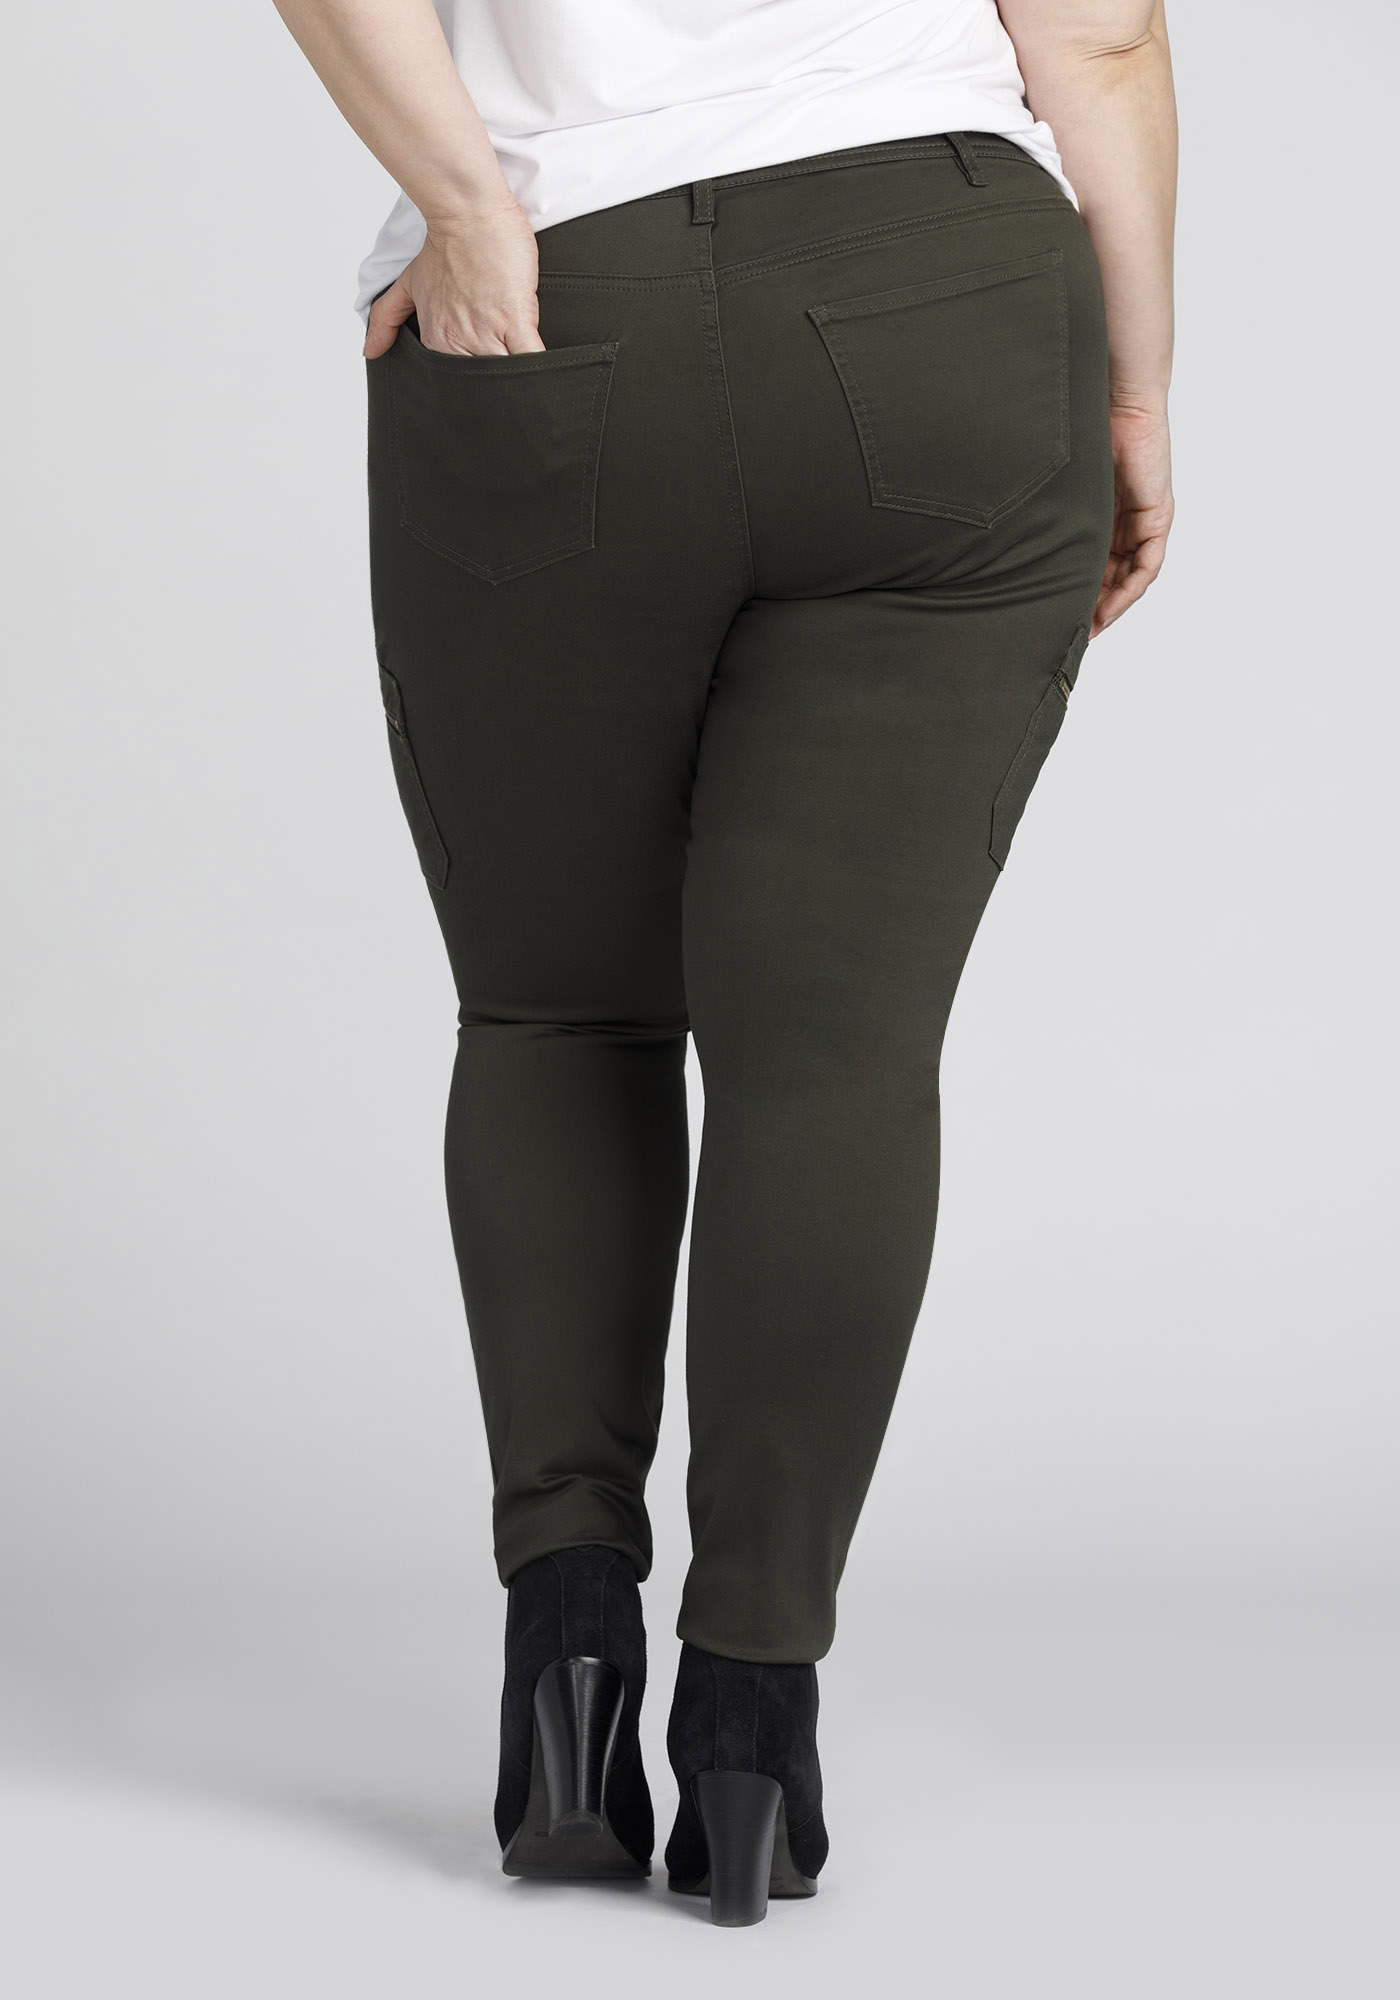 35881bb9a5d ... Womens Plus Size Skinny Cargo Pants